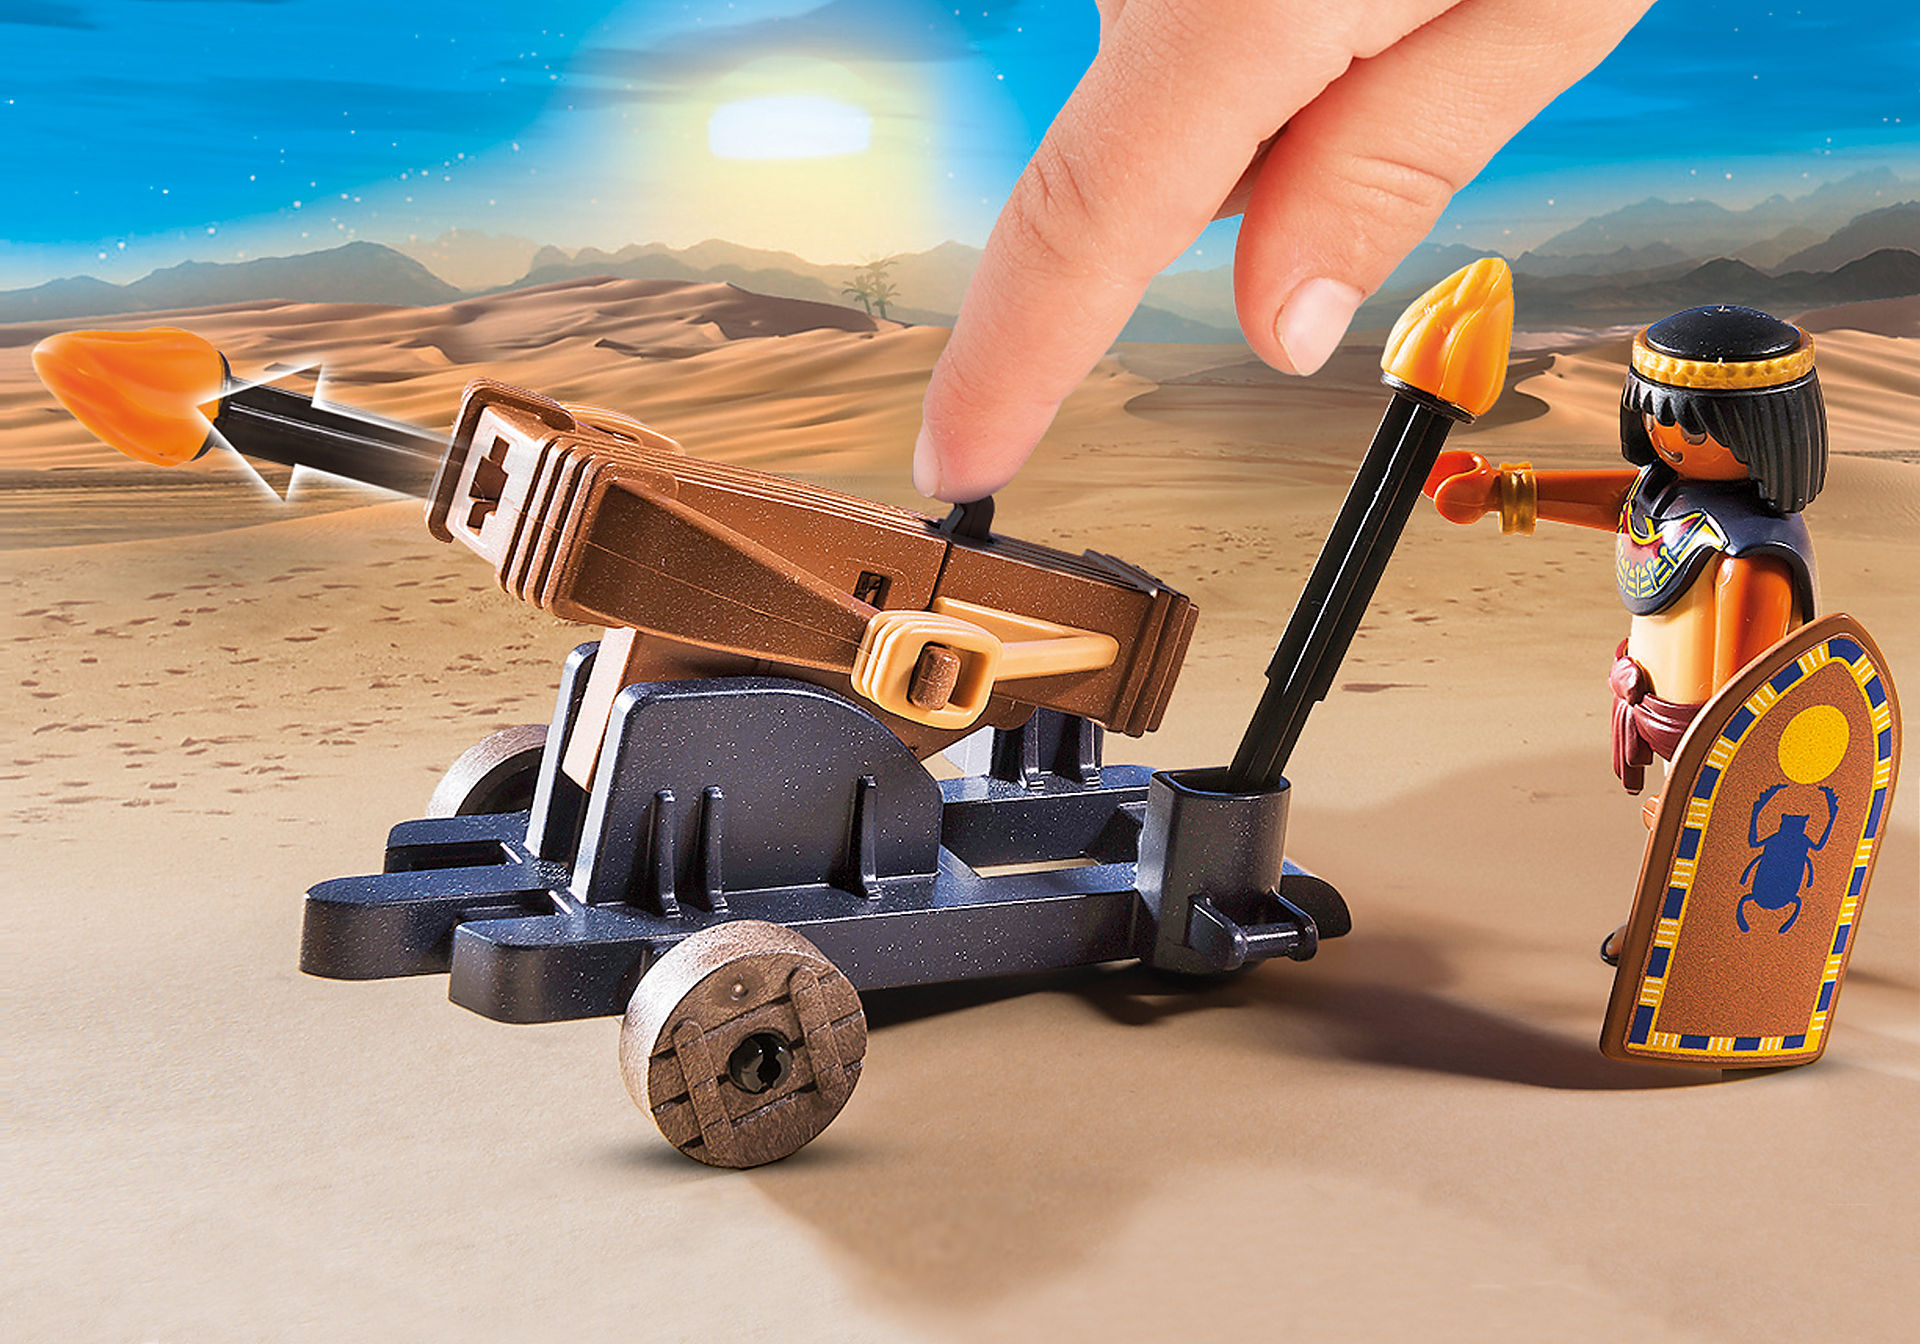 http://media.playmobil.com/i/playmobil/5388_product_extra1/Римляне и Египтяне: Египетский солдат с Баллистой